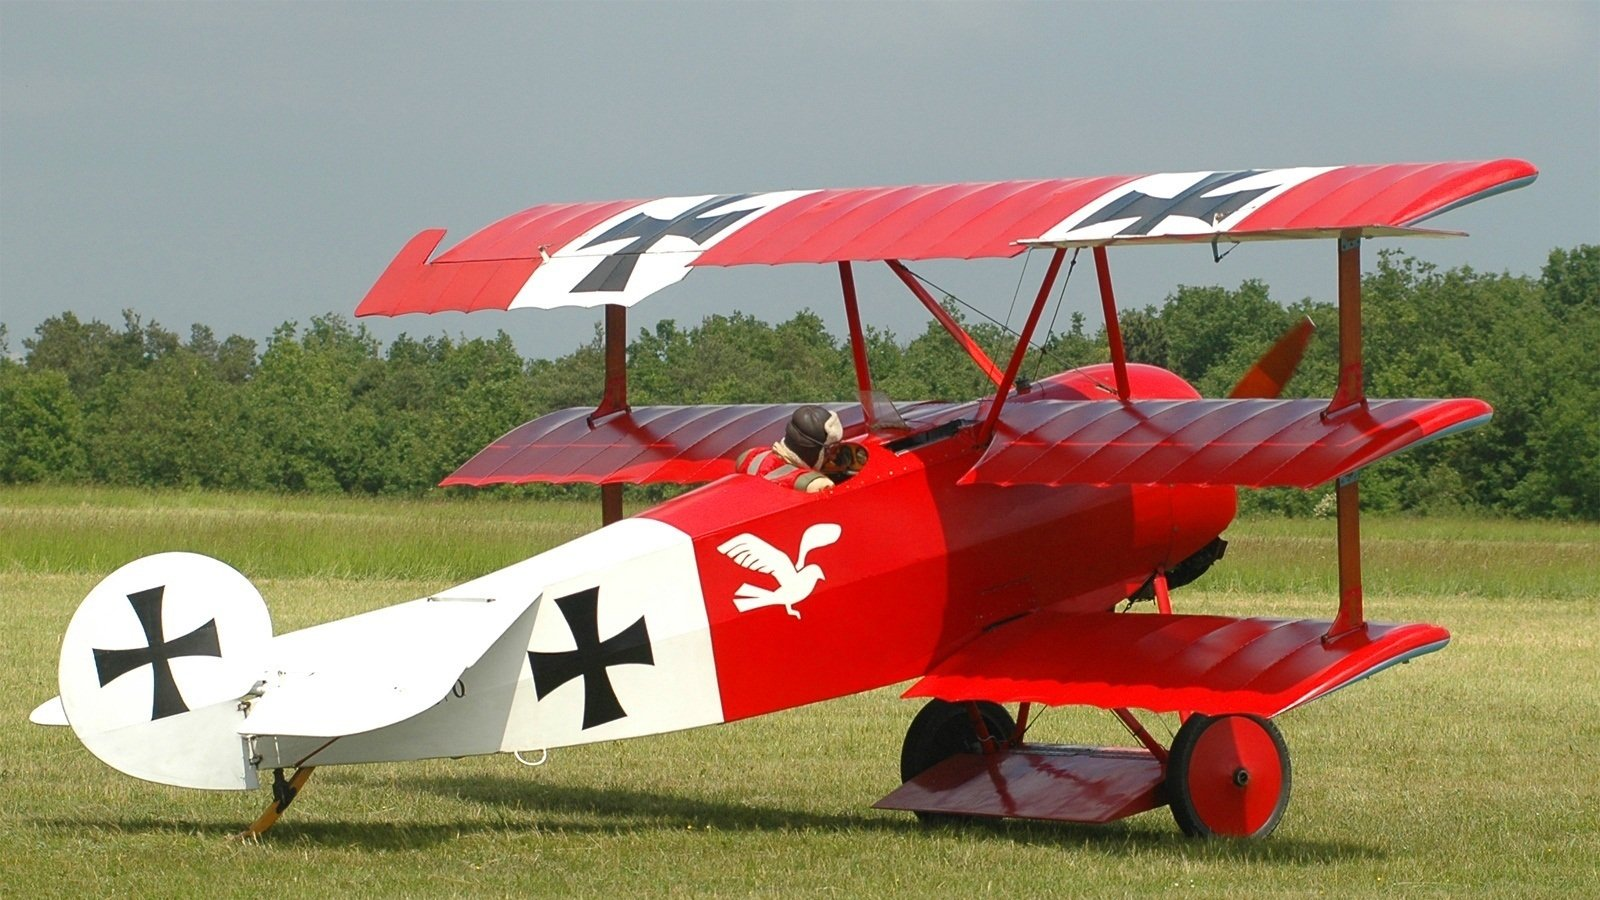 Vehicles - Fokker Dr1  Airplane Wallpaper